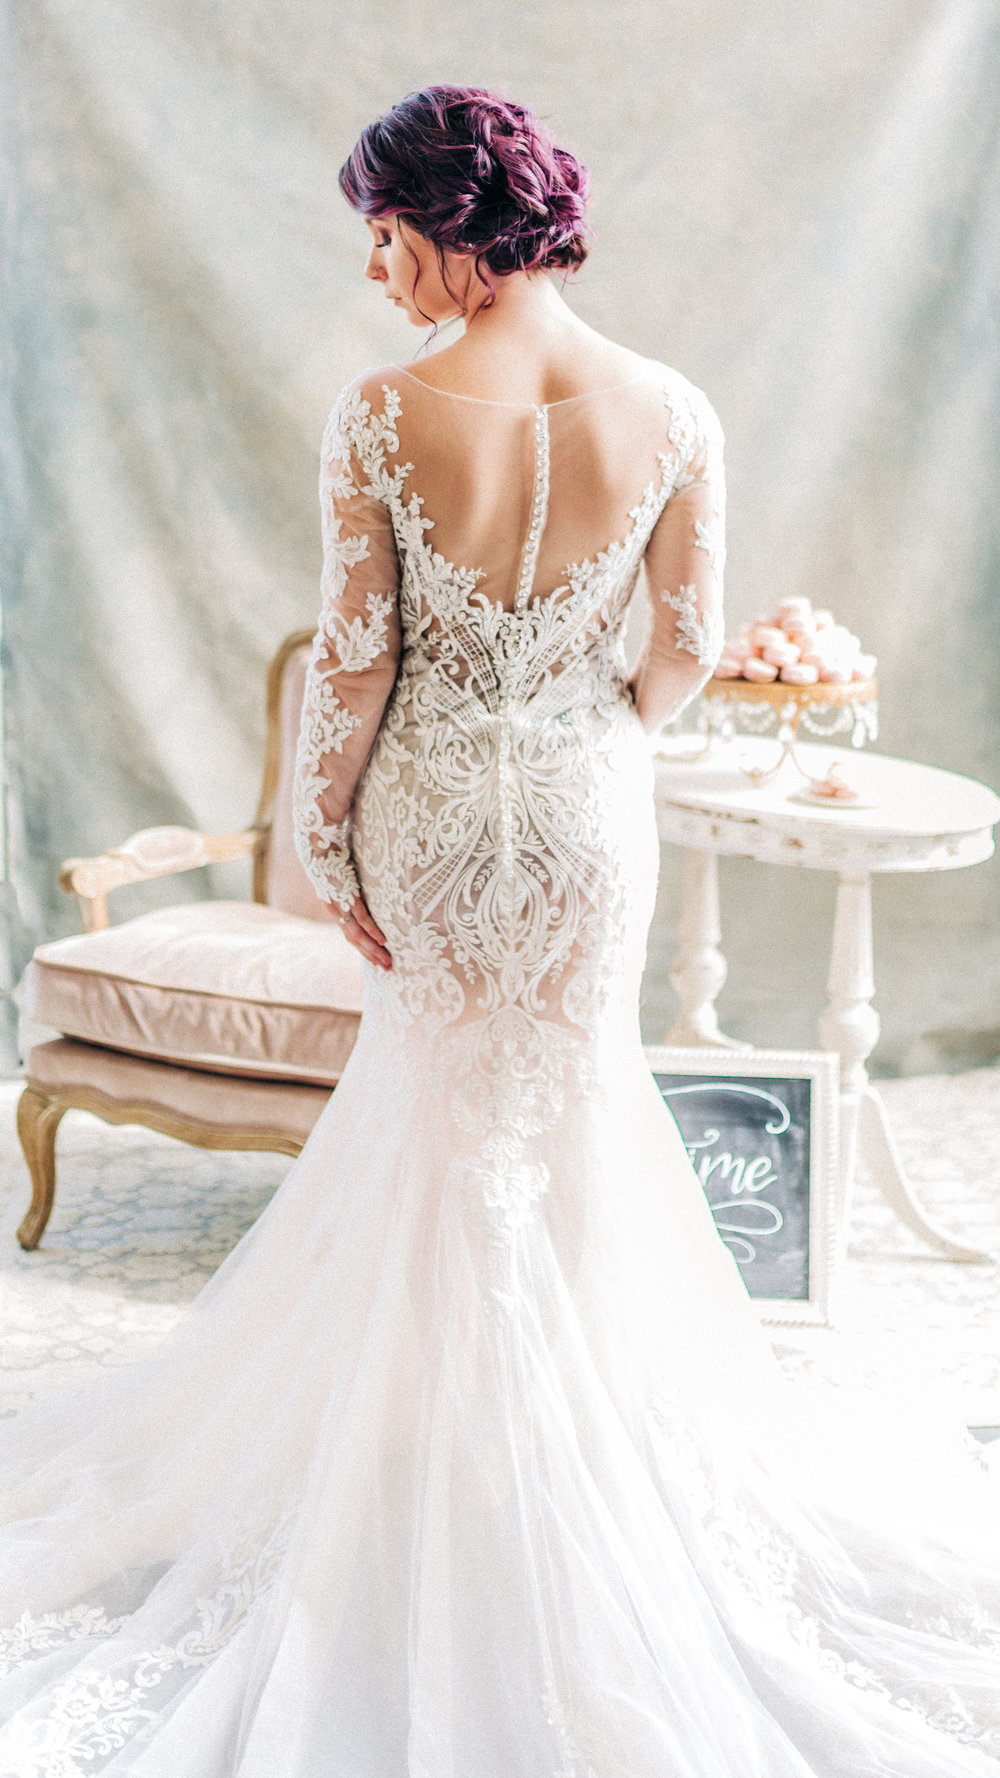 BoChic Bridal Boutique - Reading Bridal District Cincinnati - Cincinnati Wedding Planner